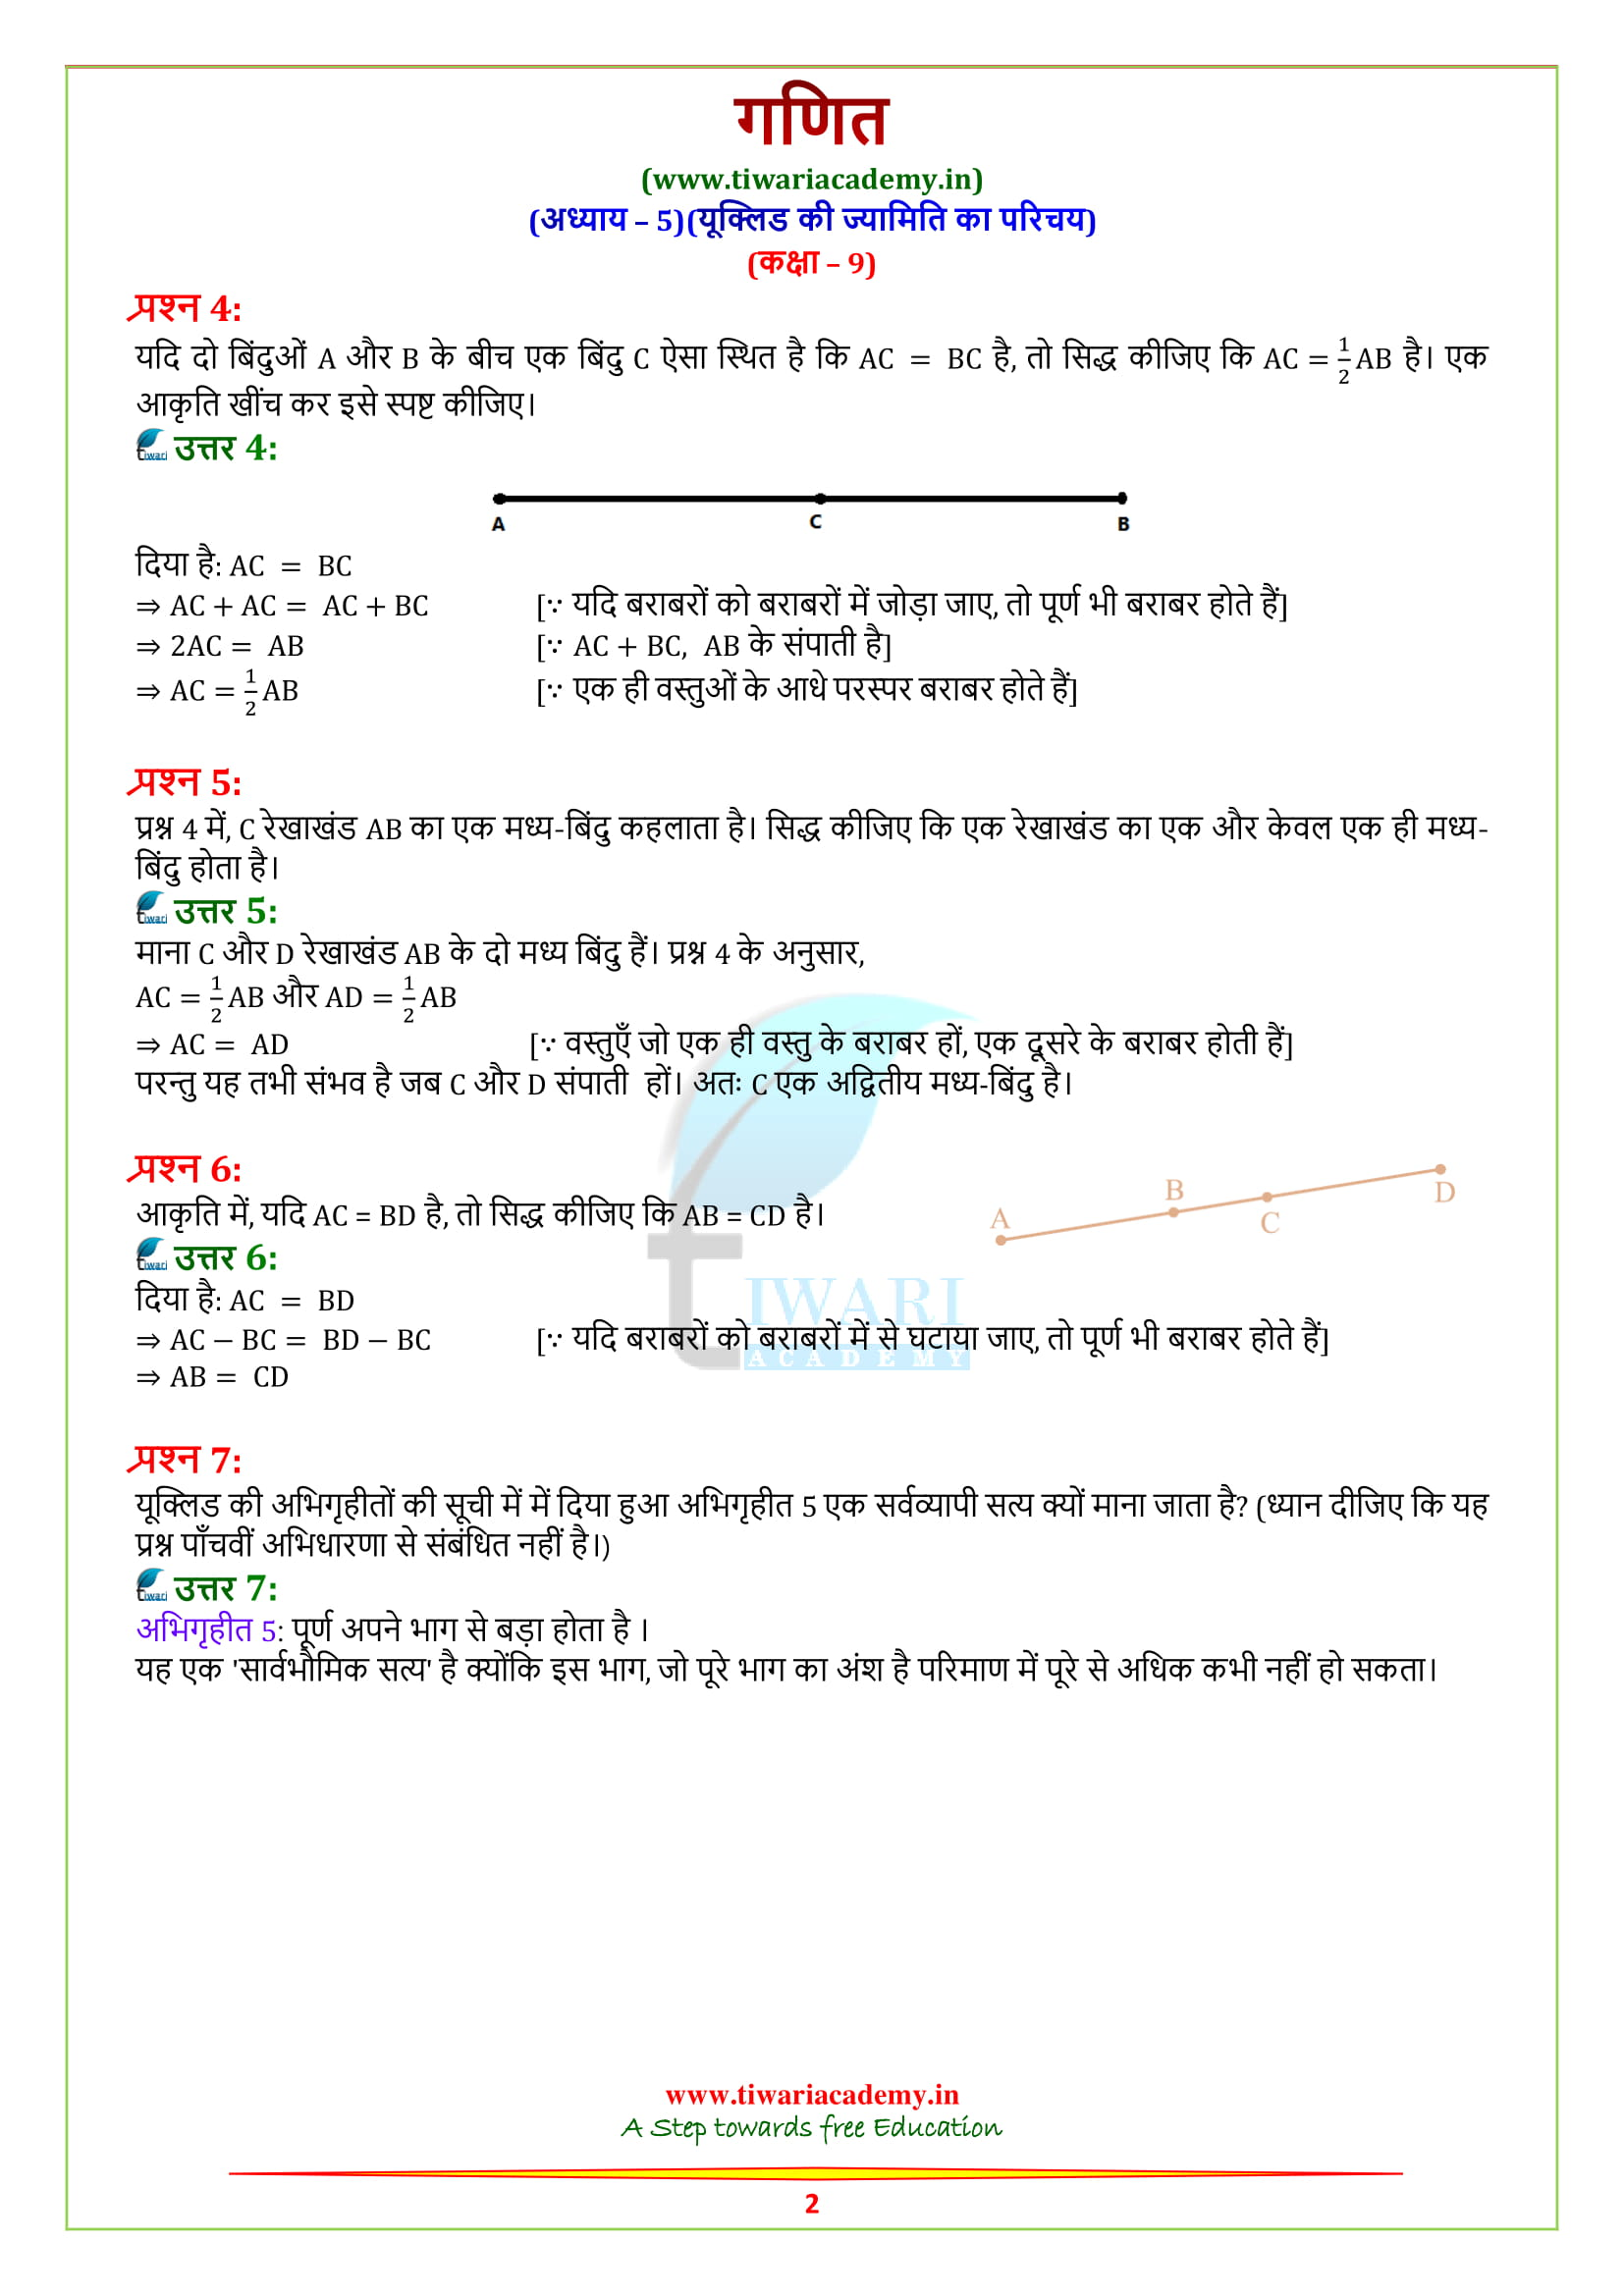 NCERT Solutions for class 9 Maths Chapter 5.1 all questions new updated